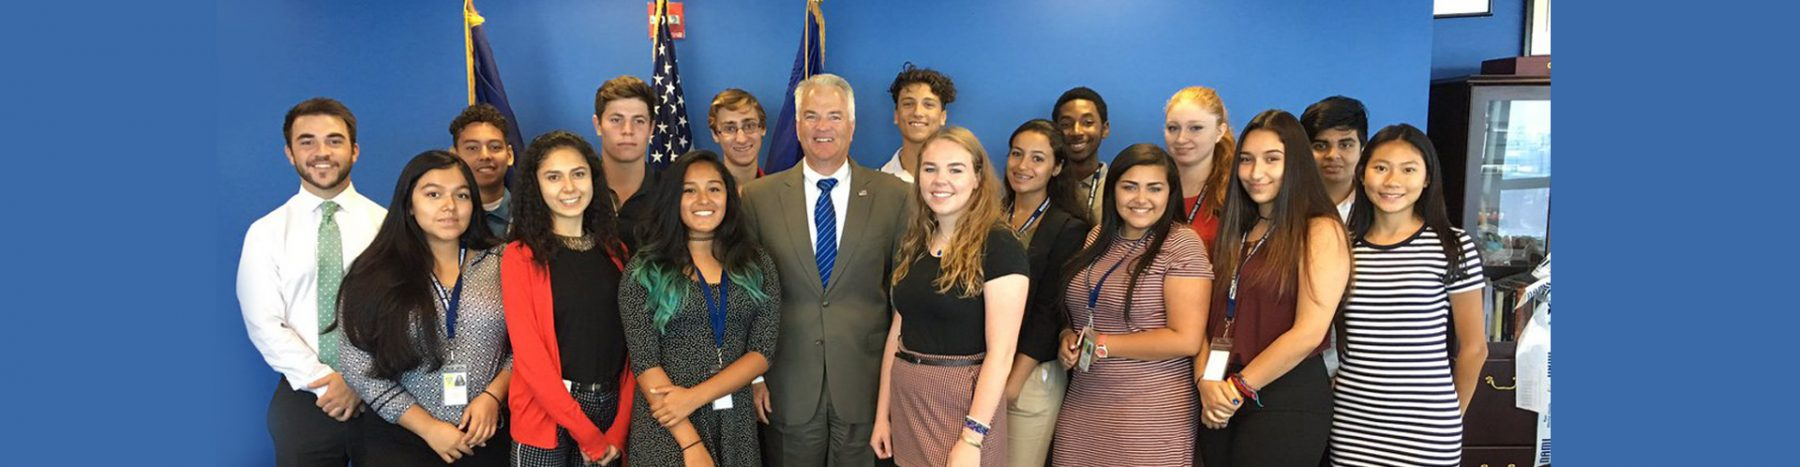 DA McMahon standing with Interns